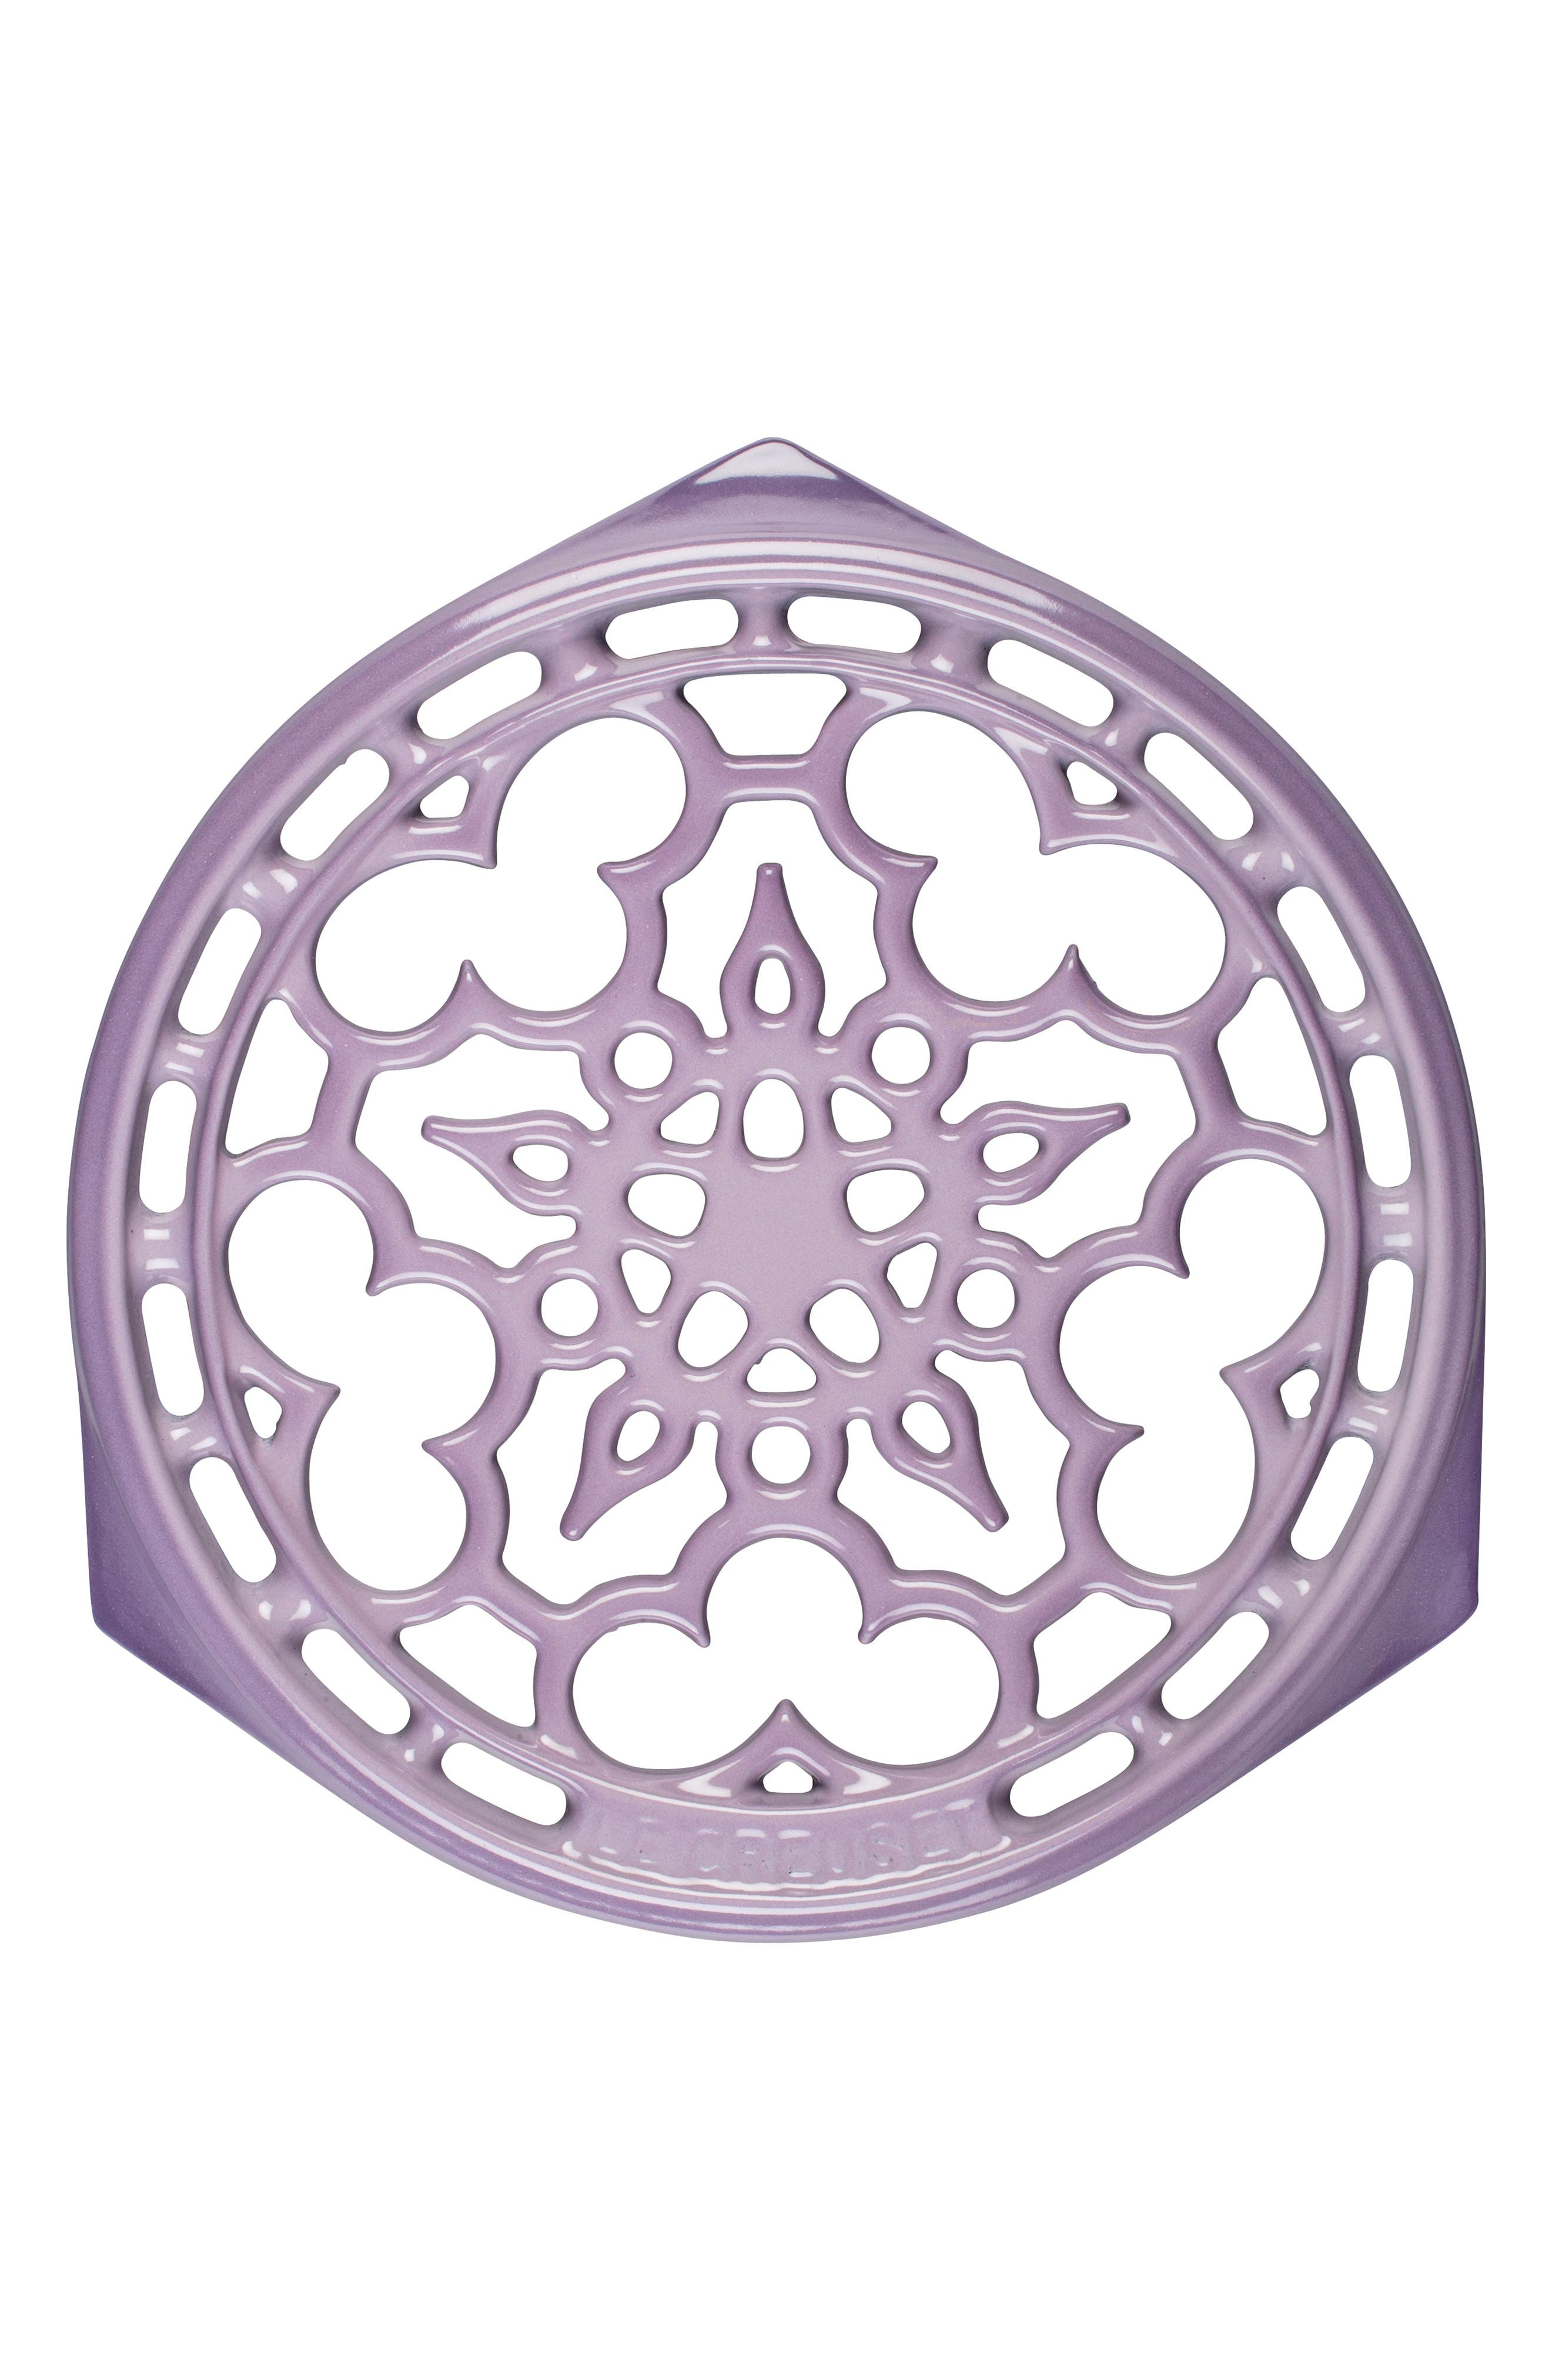 Deluxe Round Enamel Cast Iron Trivet,                         Main,                         color, 505